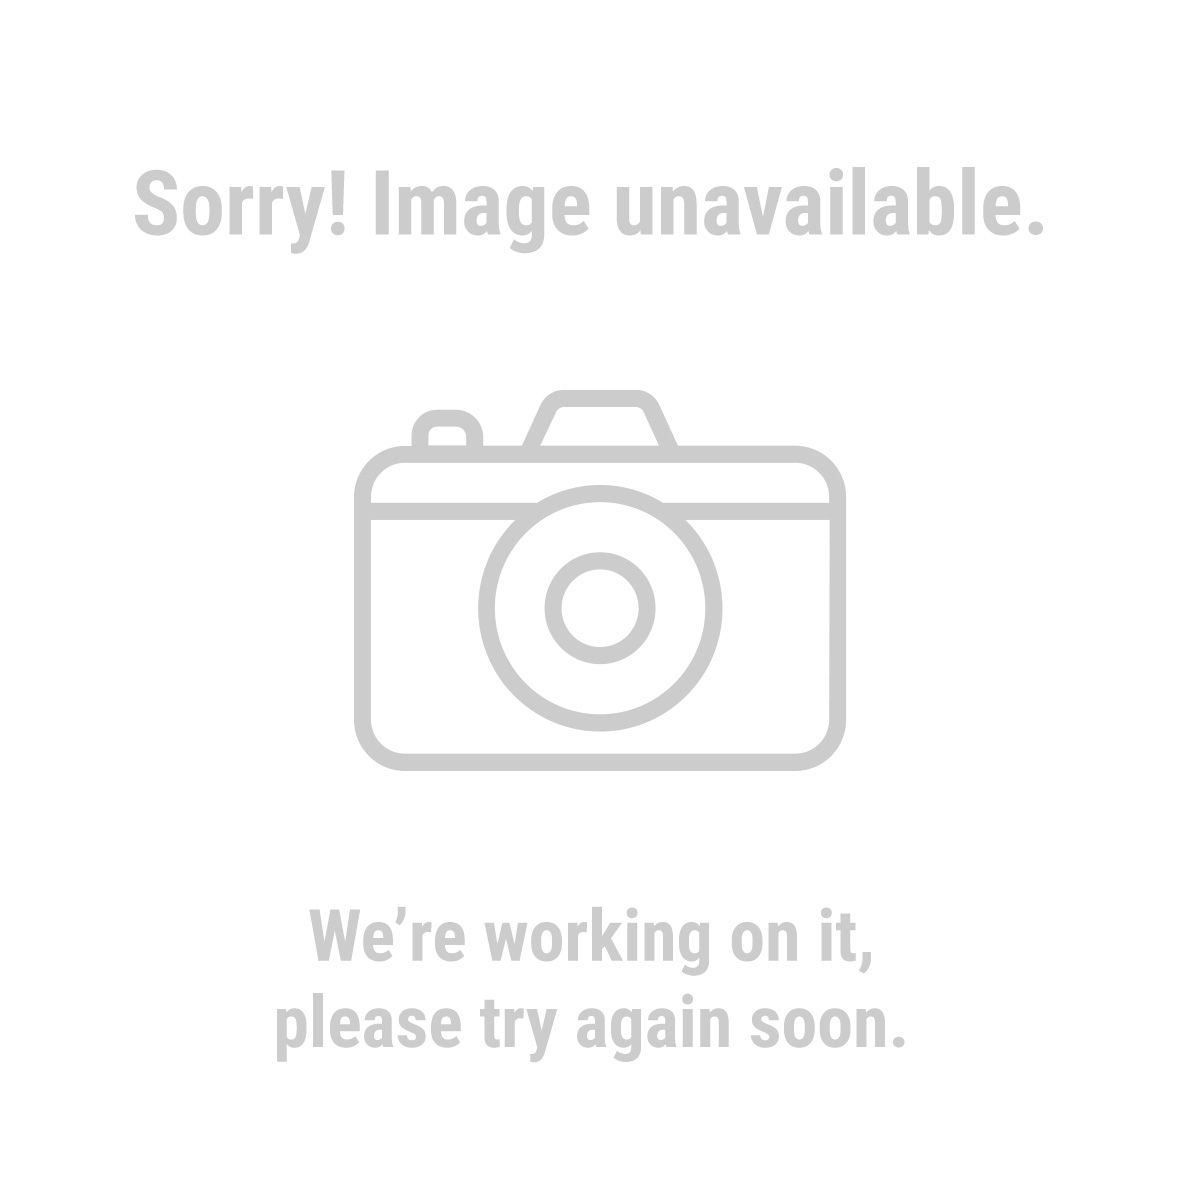 image_20969 3 gal 1 3 hp 100 psi oilless pancake air compressor  at gsmx.co